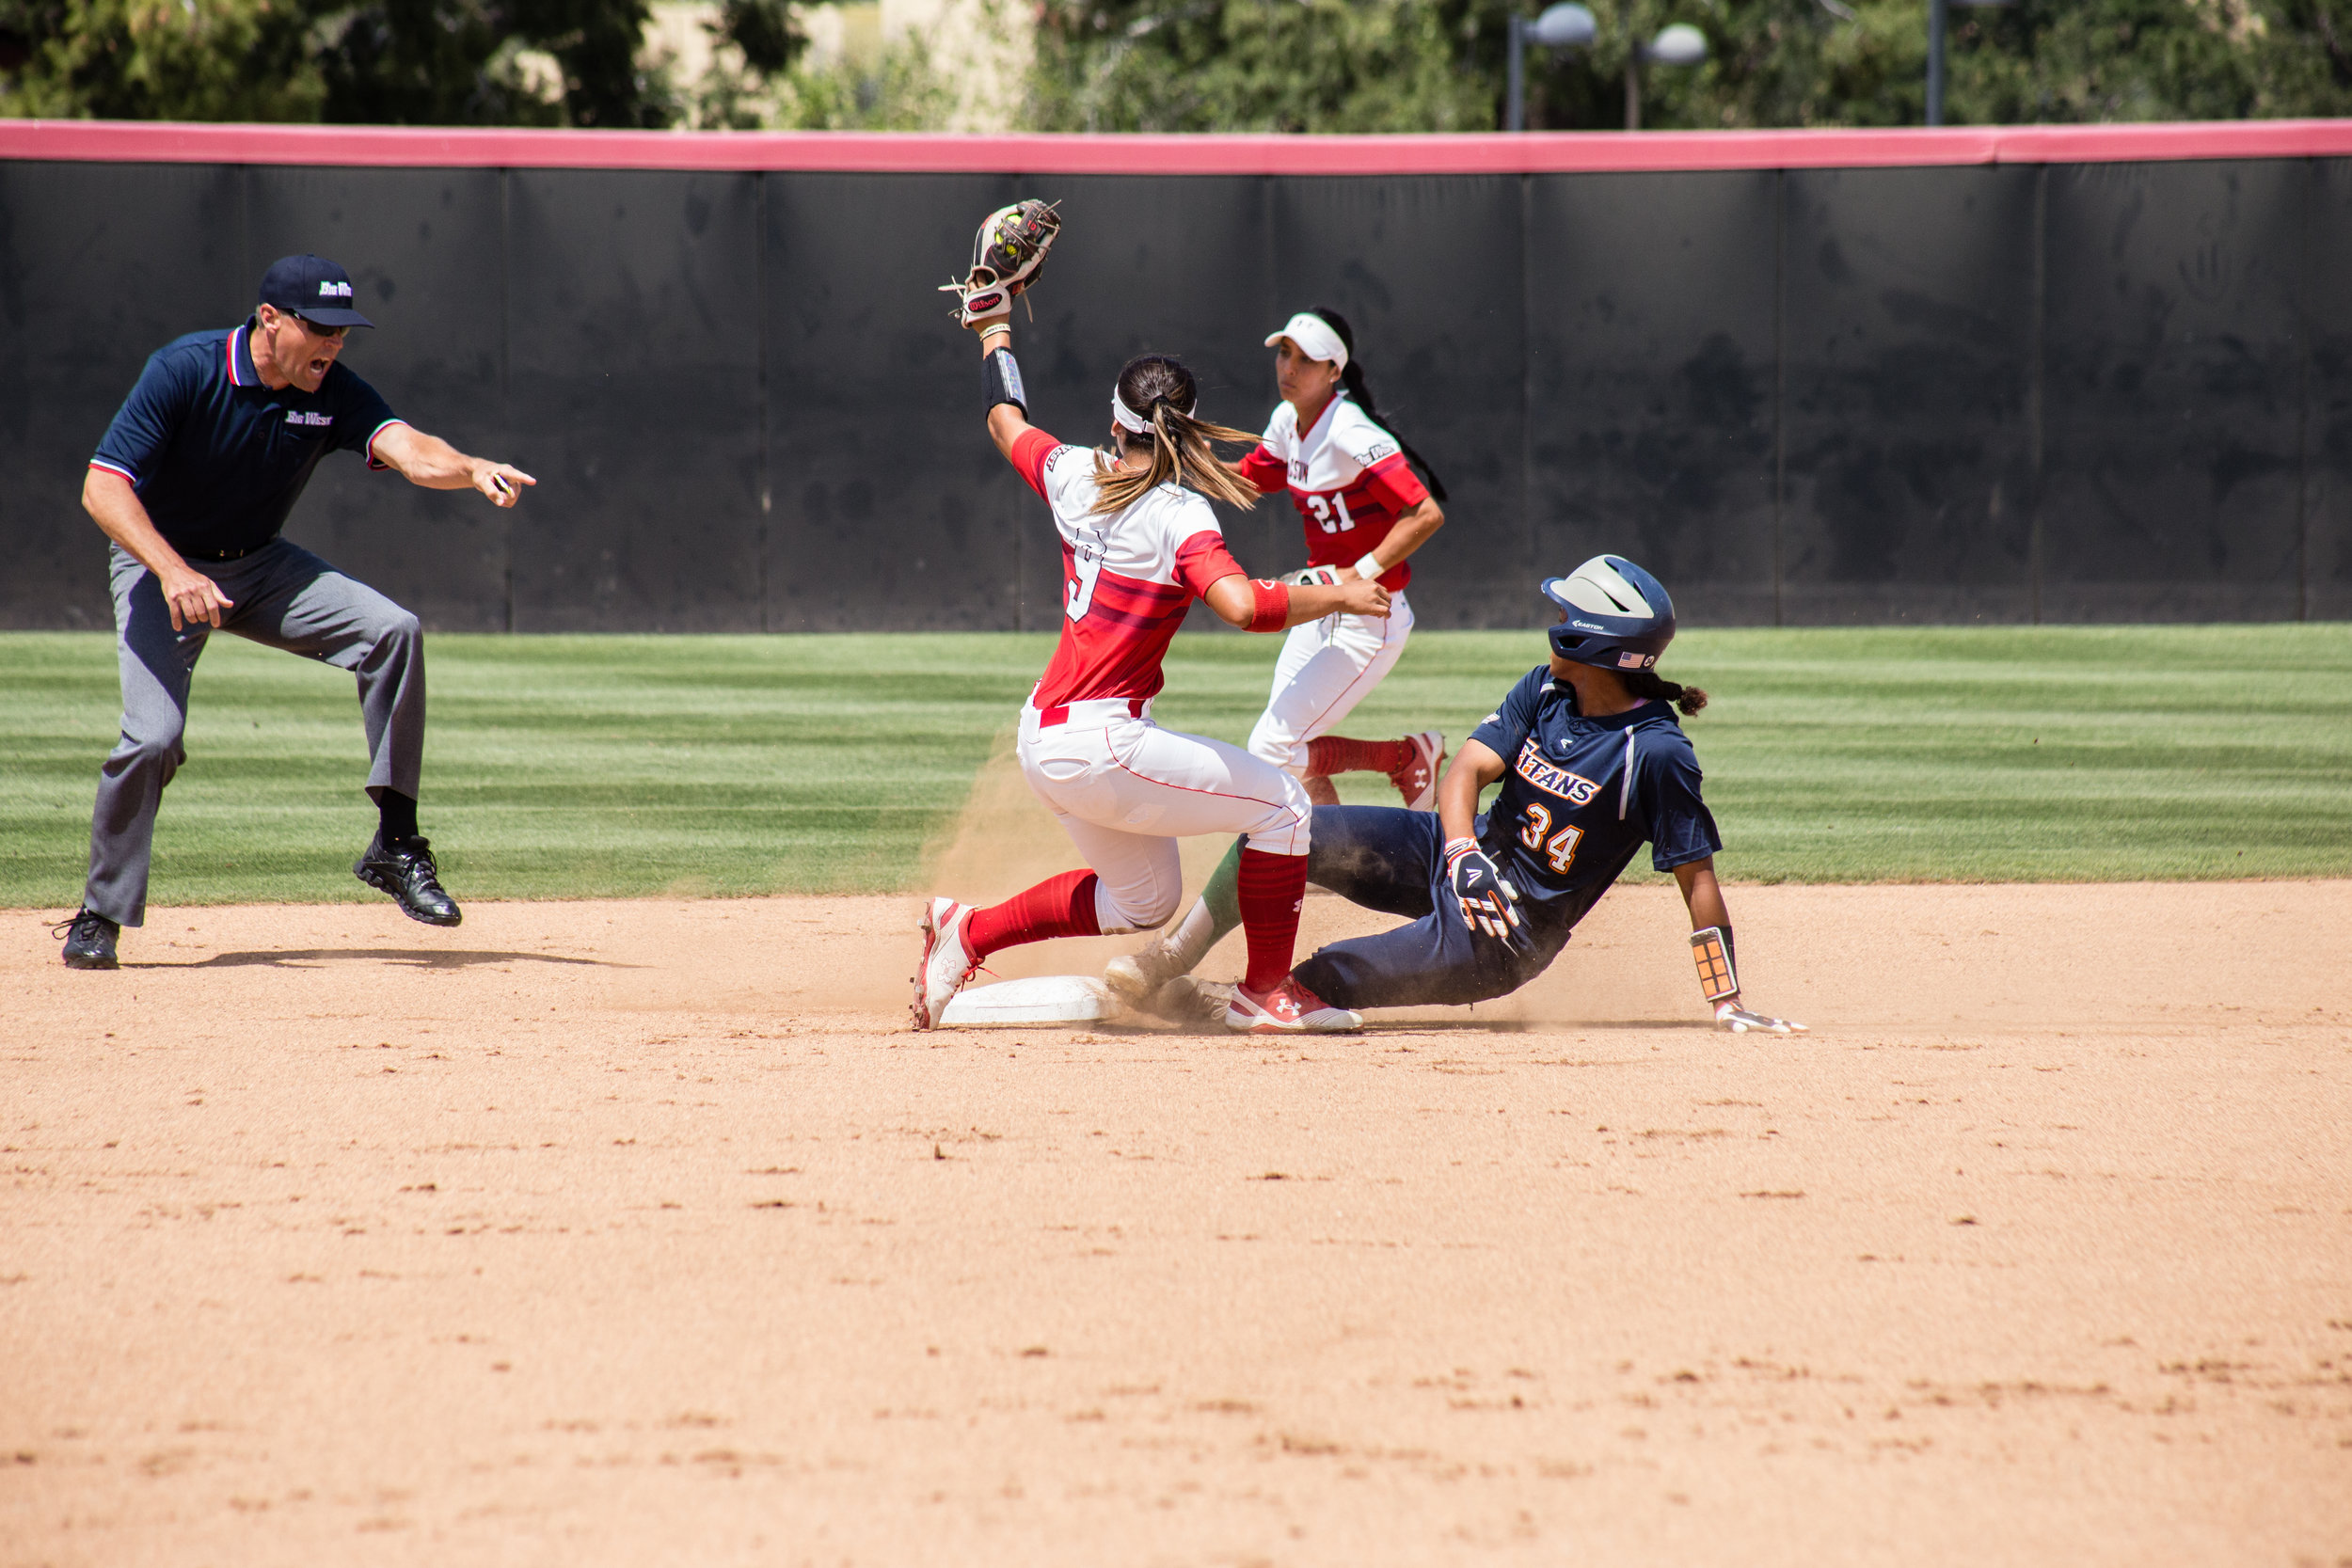 2018_04_07 - Softball vs CSU Fullerton (max reso)-9.jpg